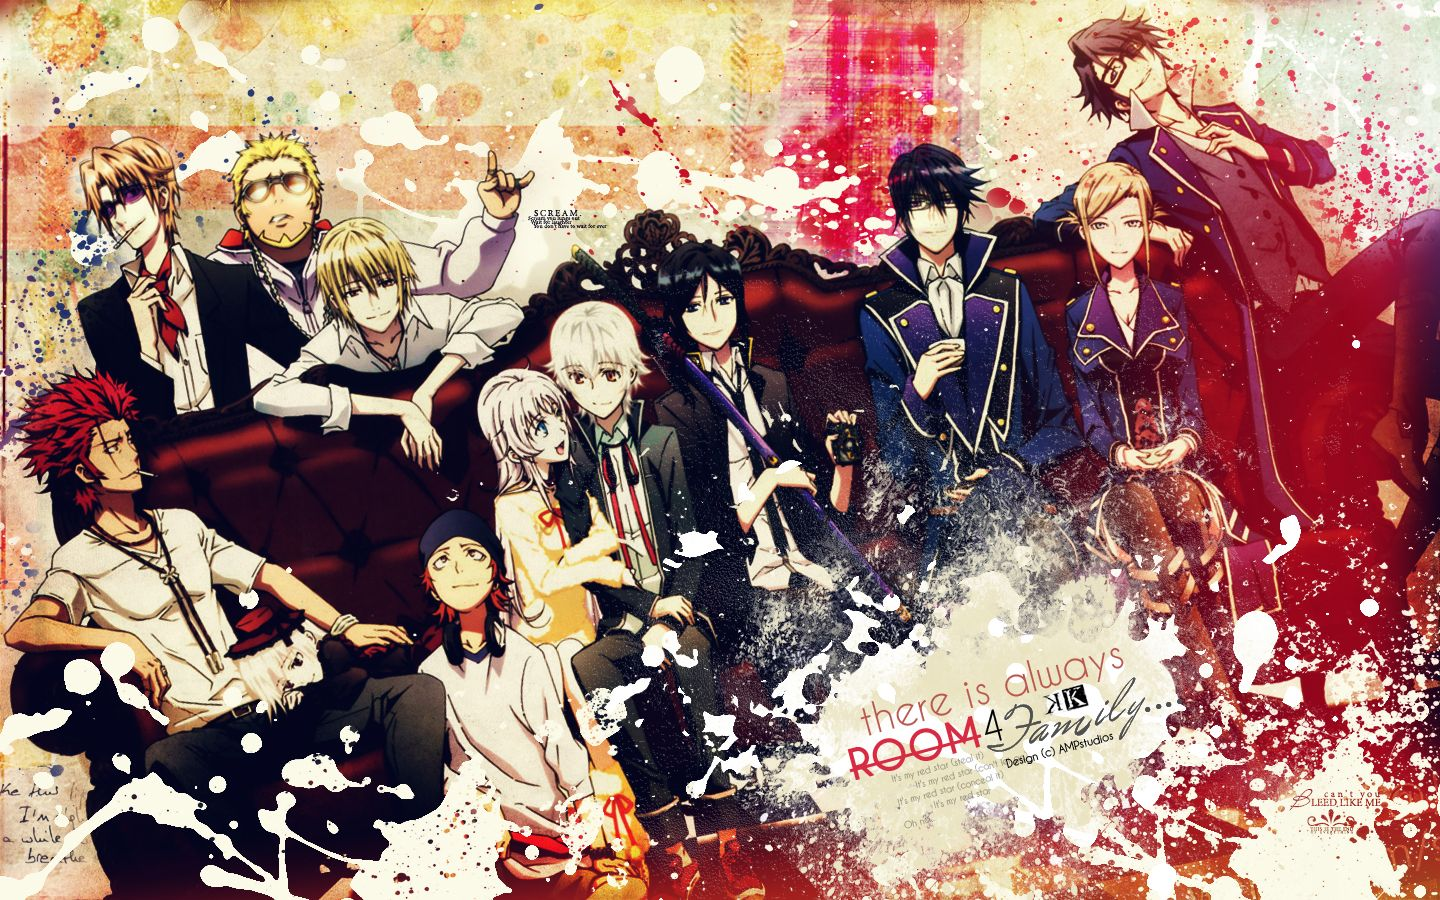 Under Armour Wallpaper Hd Resolution K Project K Project Anime Under Armour Wallpaper